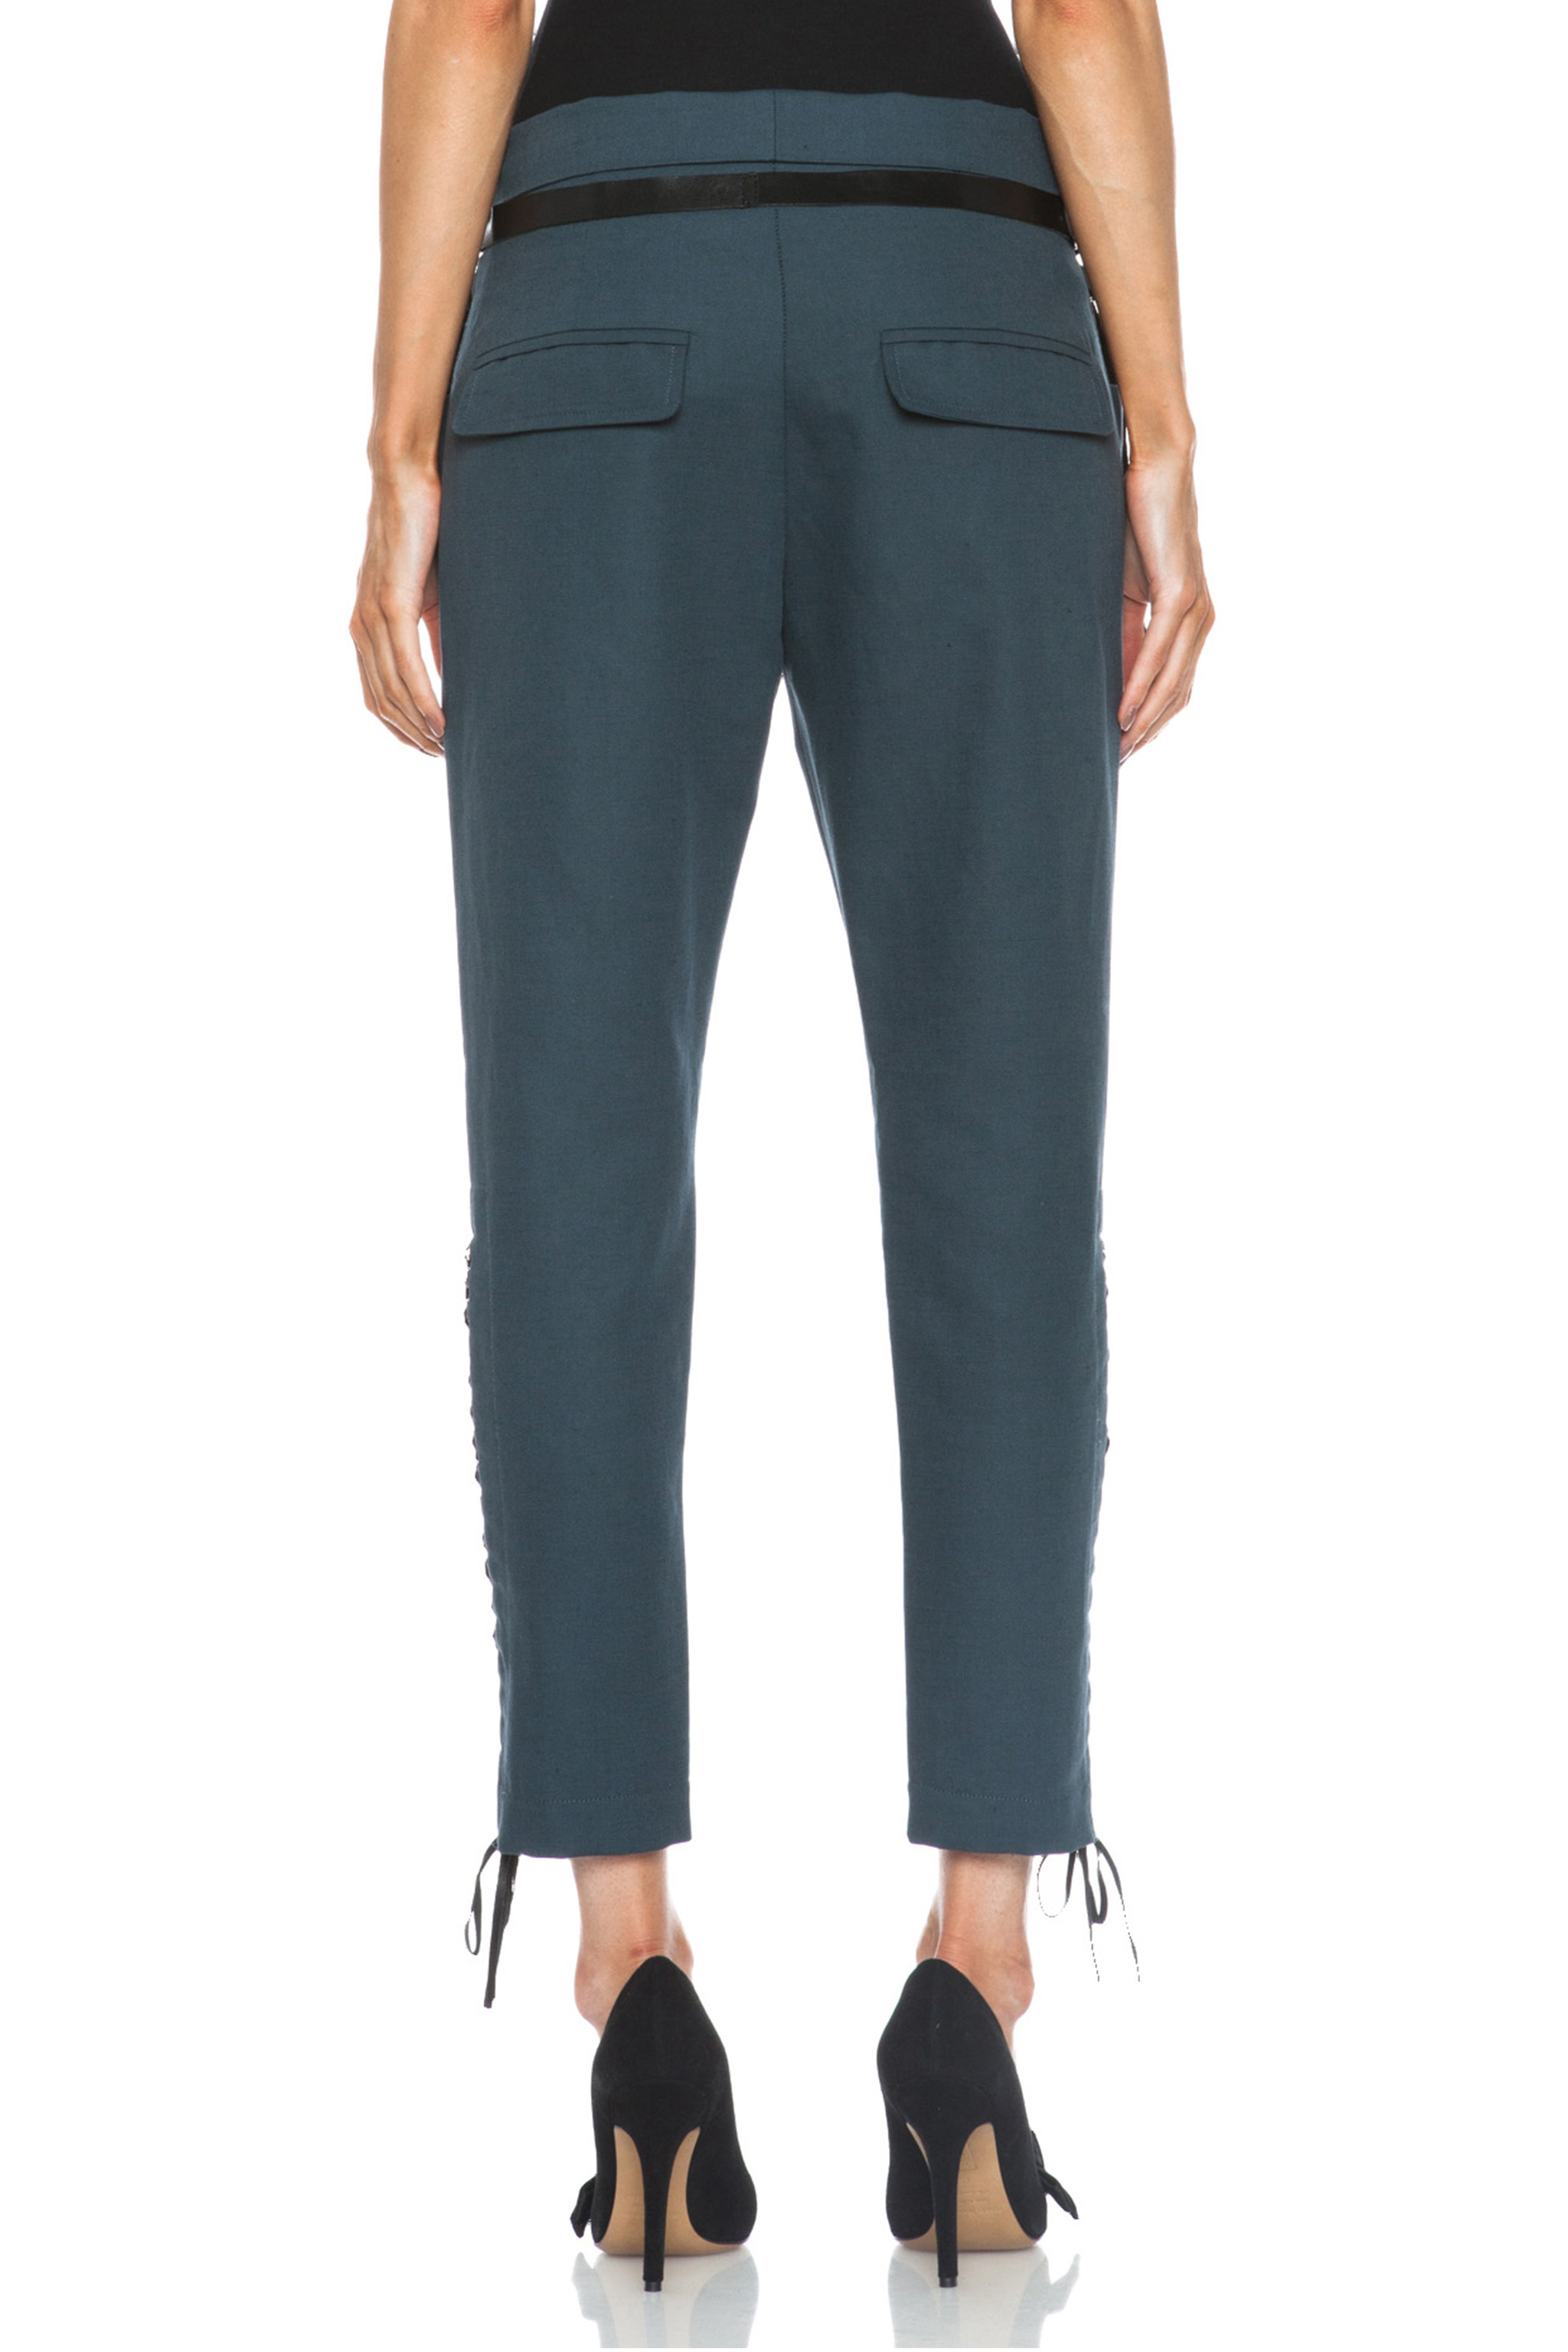 Isabel Marant|Den Linen-Blend Cropped Pants in Slate Blue